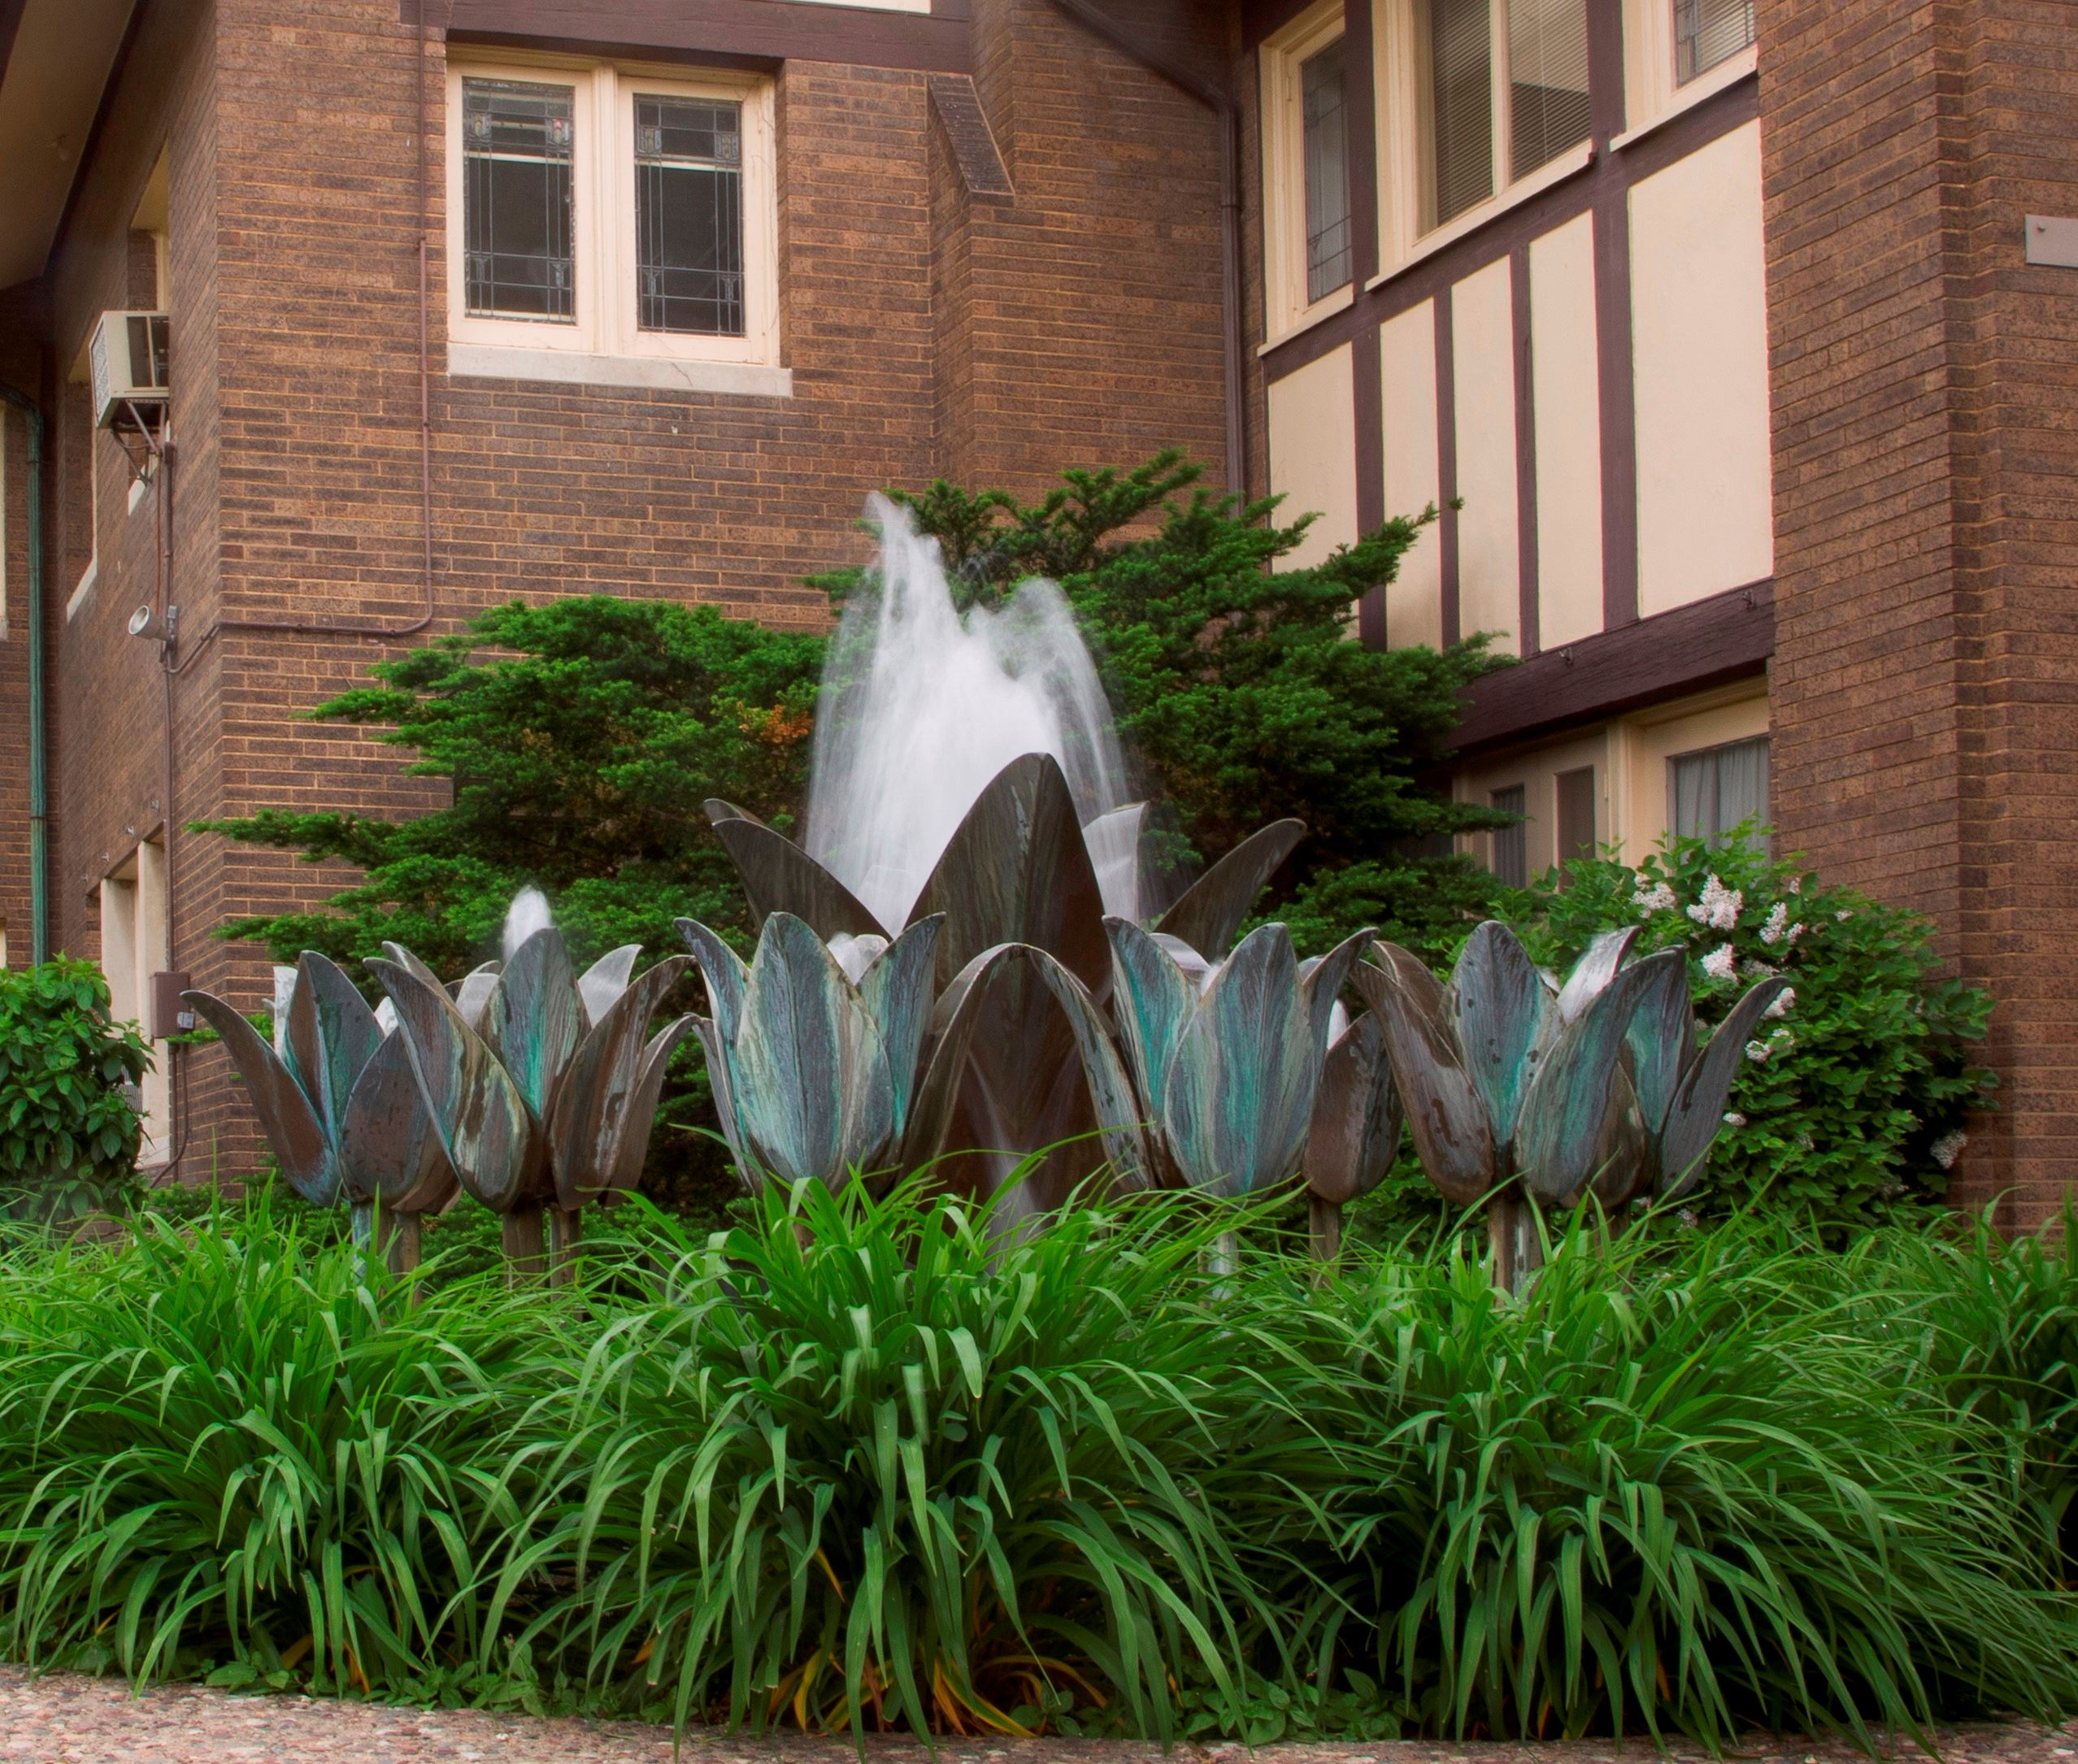 Tulip Fountain at Hauberg Mansion, Installed 1909-11